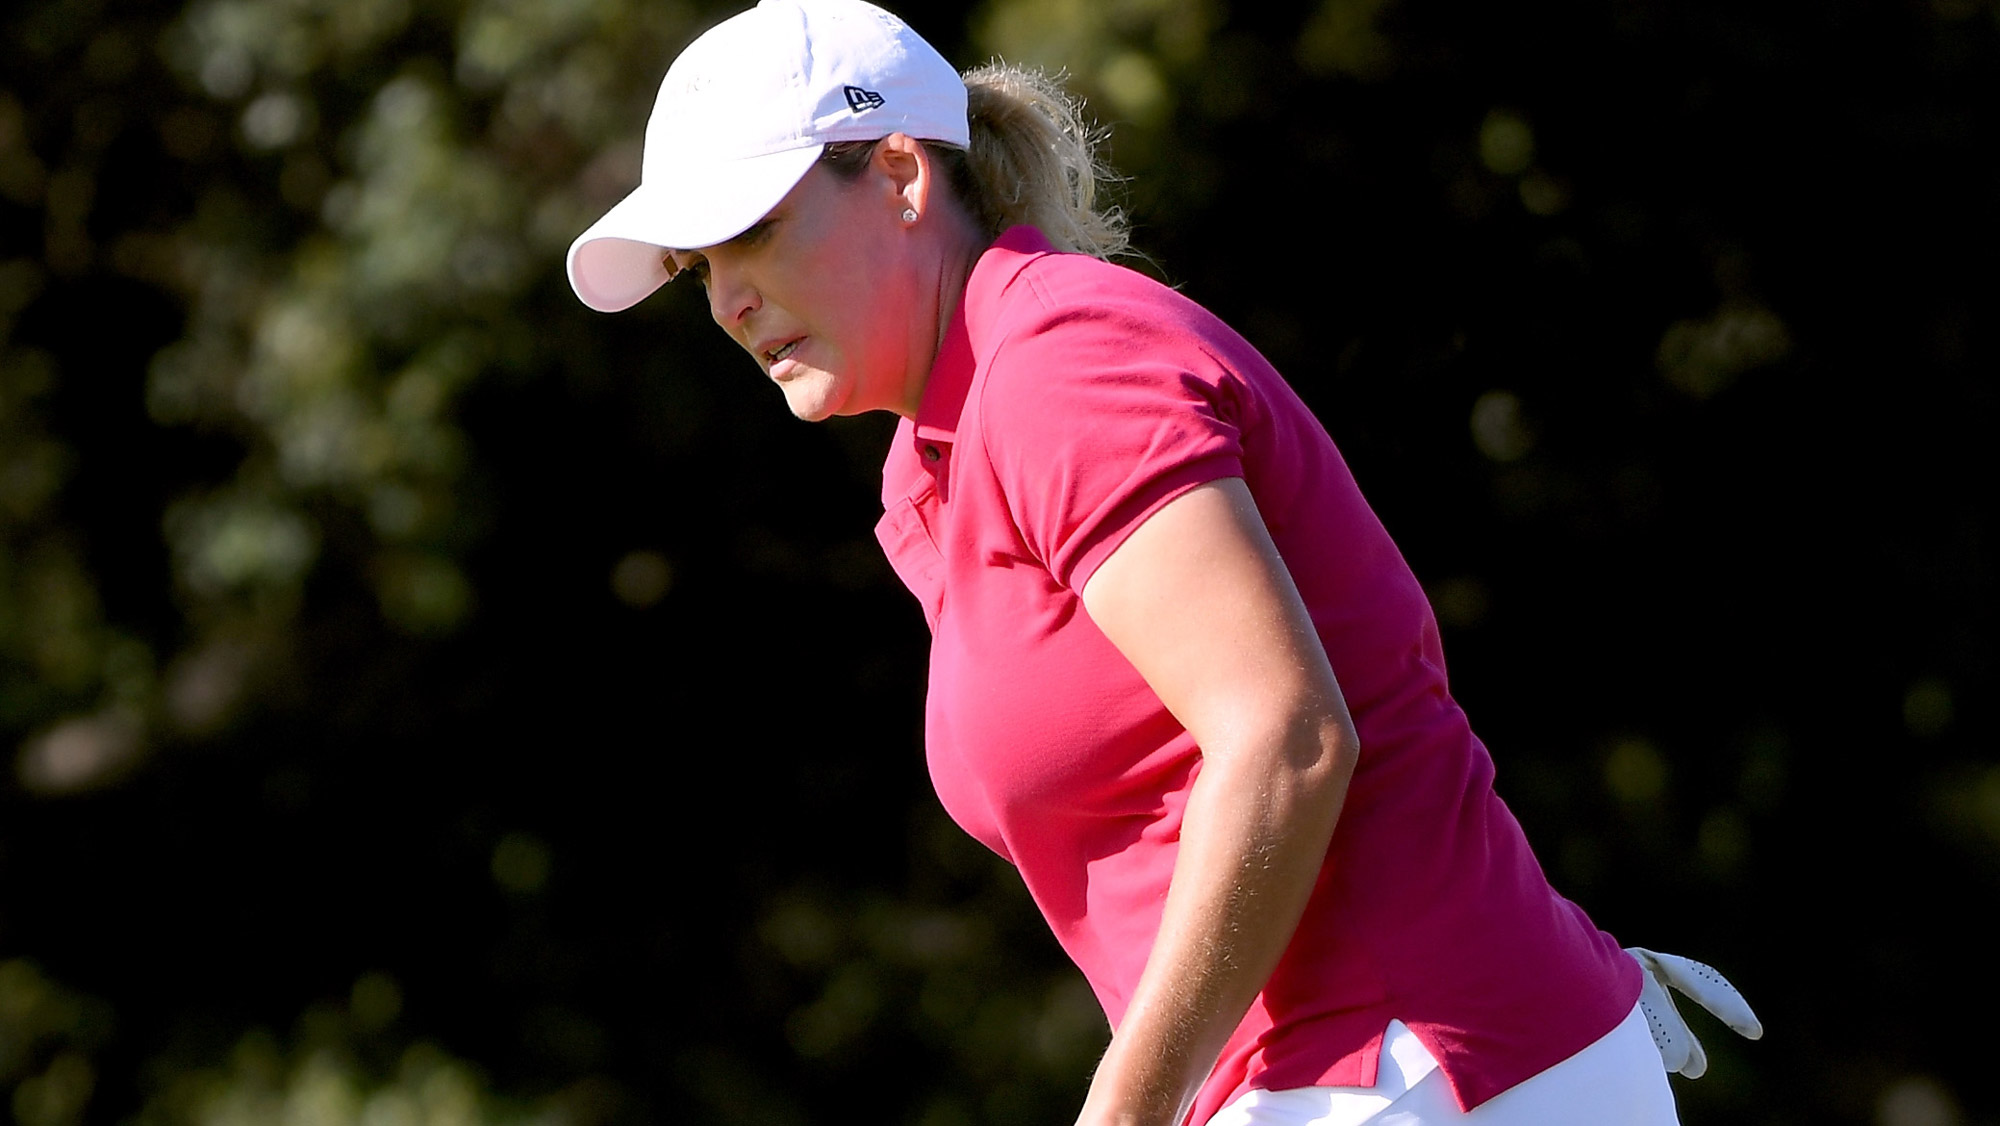 Cristie Kerr Walks in Putt on Day One in Hawaii